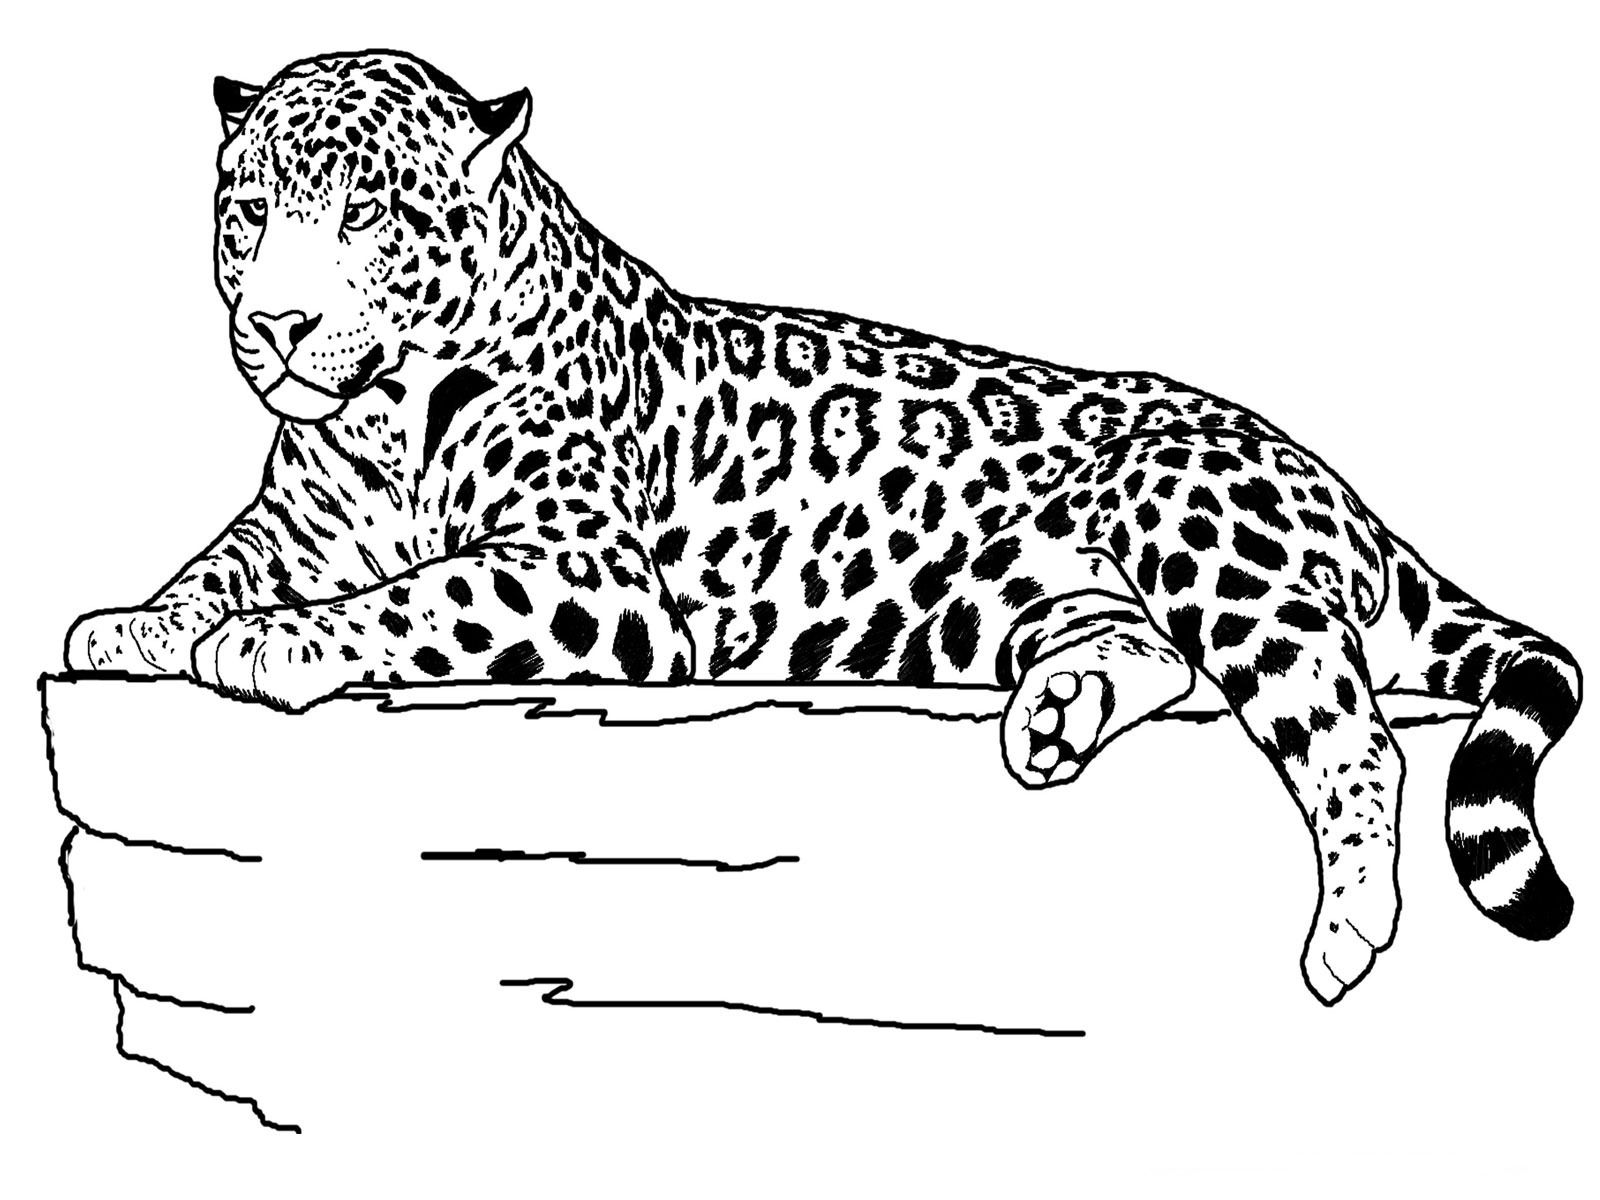 Zoo Animal Coloring Pages: also available are farm animals - all ...